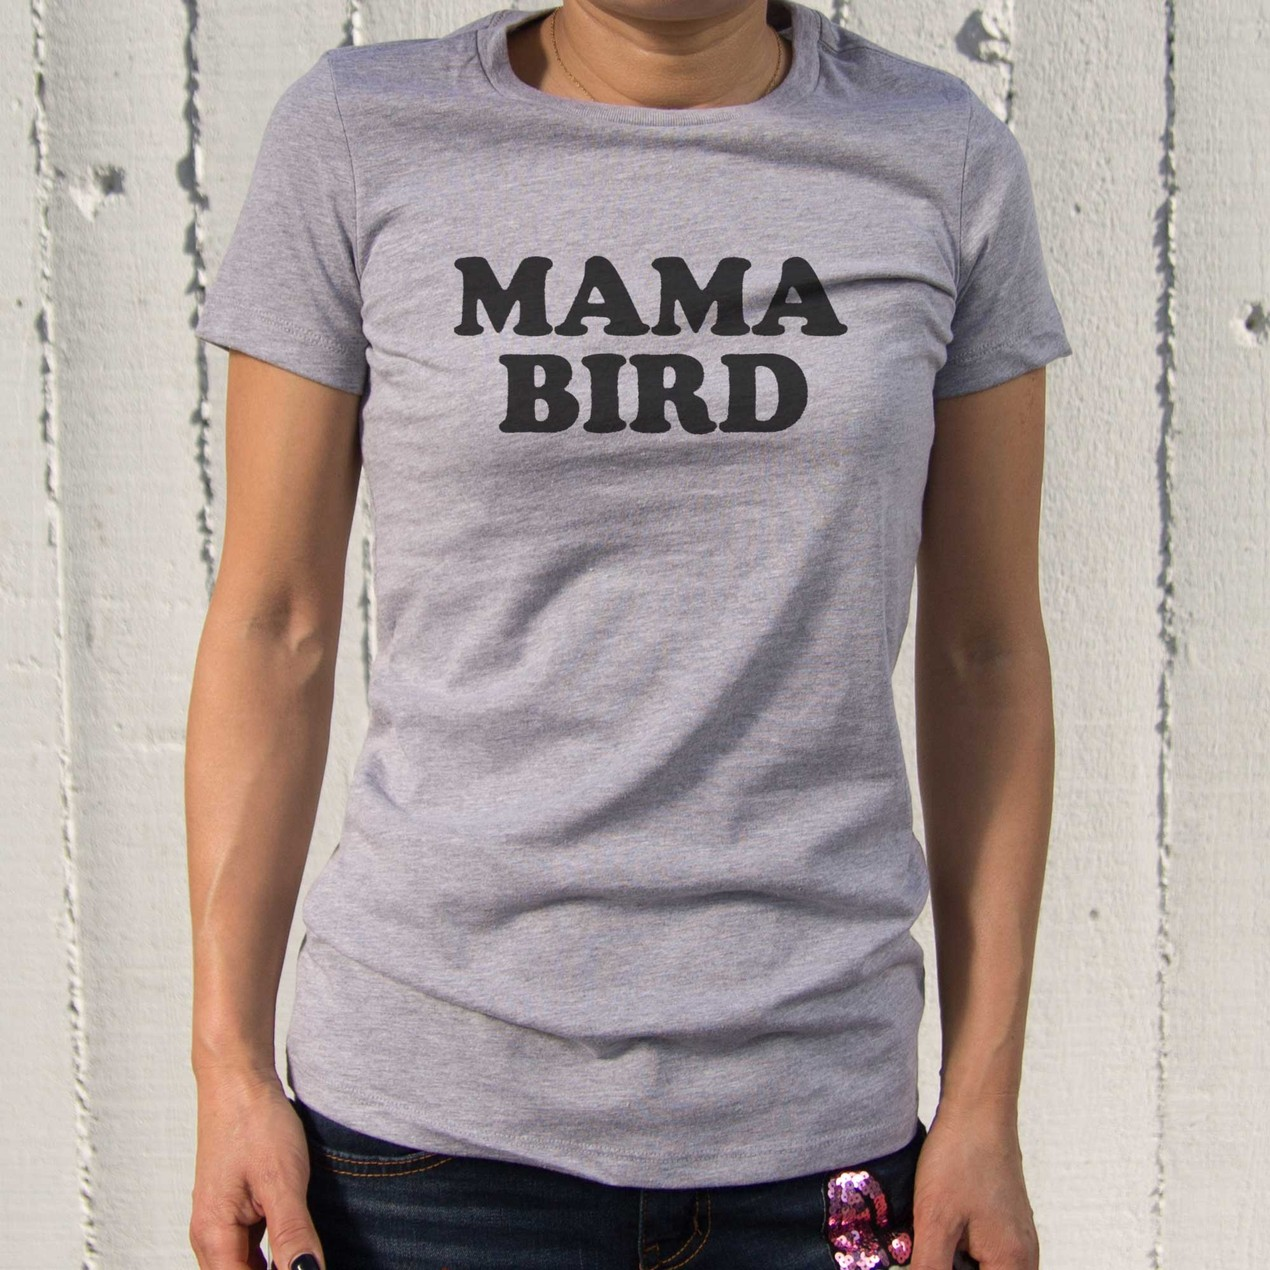 Mama Bird T-shirt Cute Graphic Tees For Mom Mothers\' Day Or ...